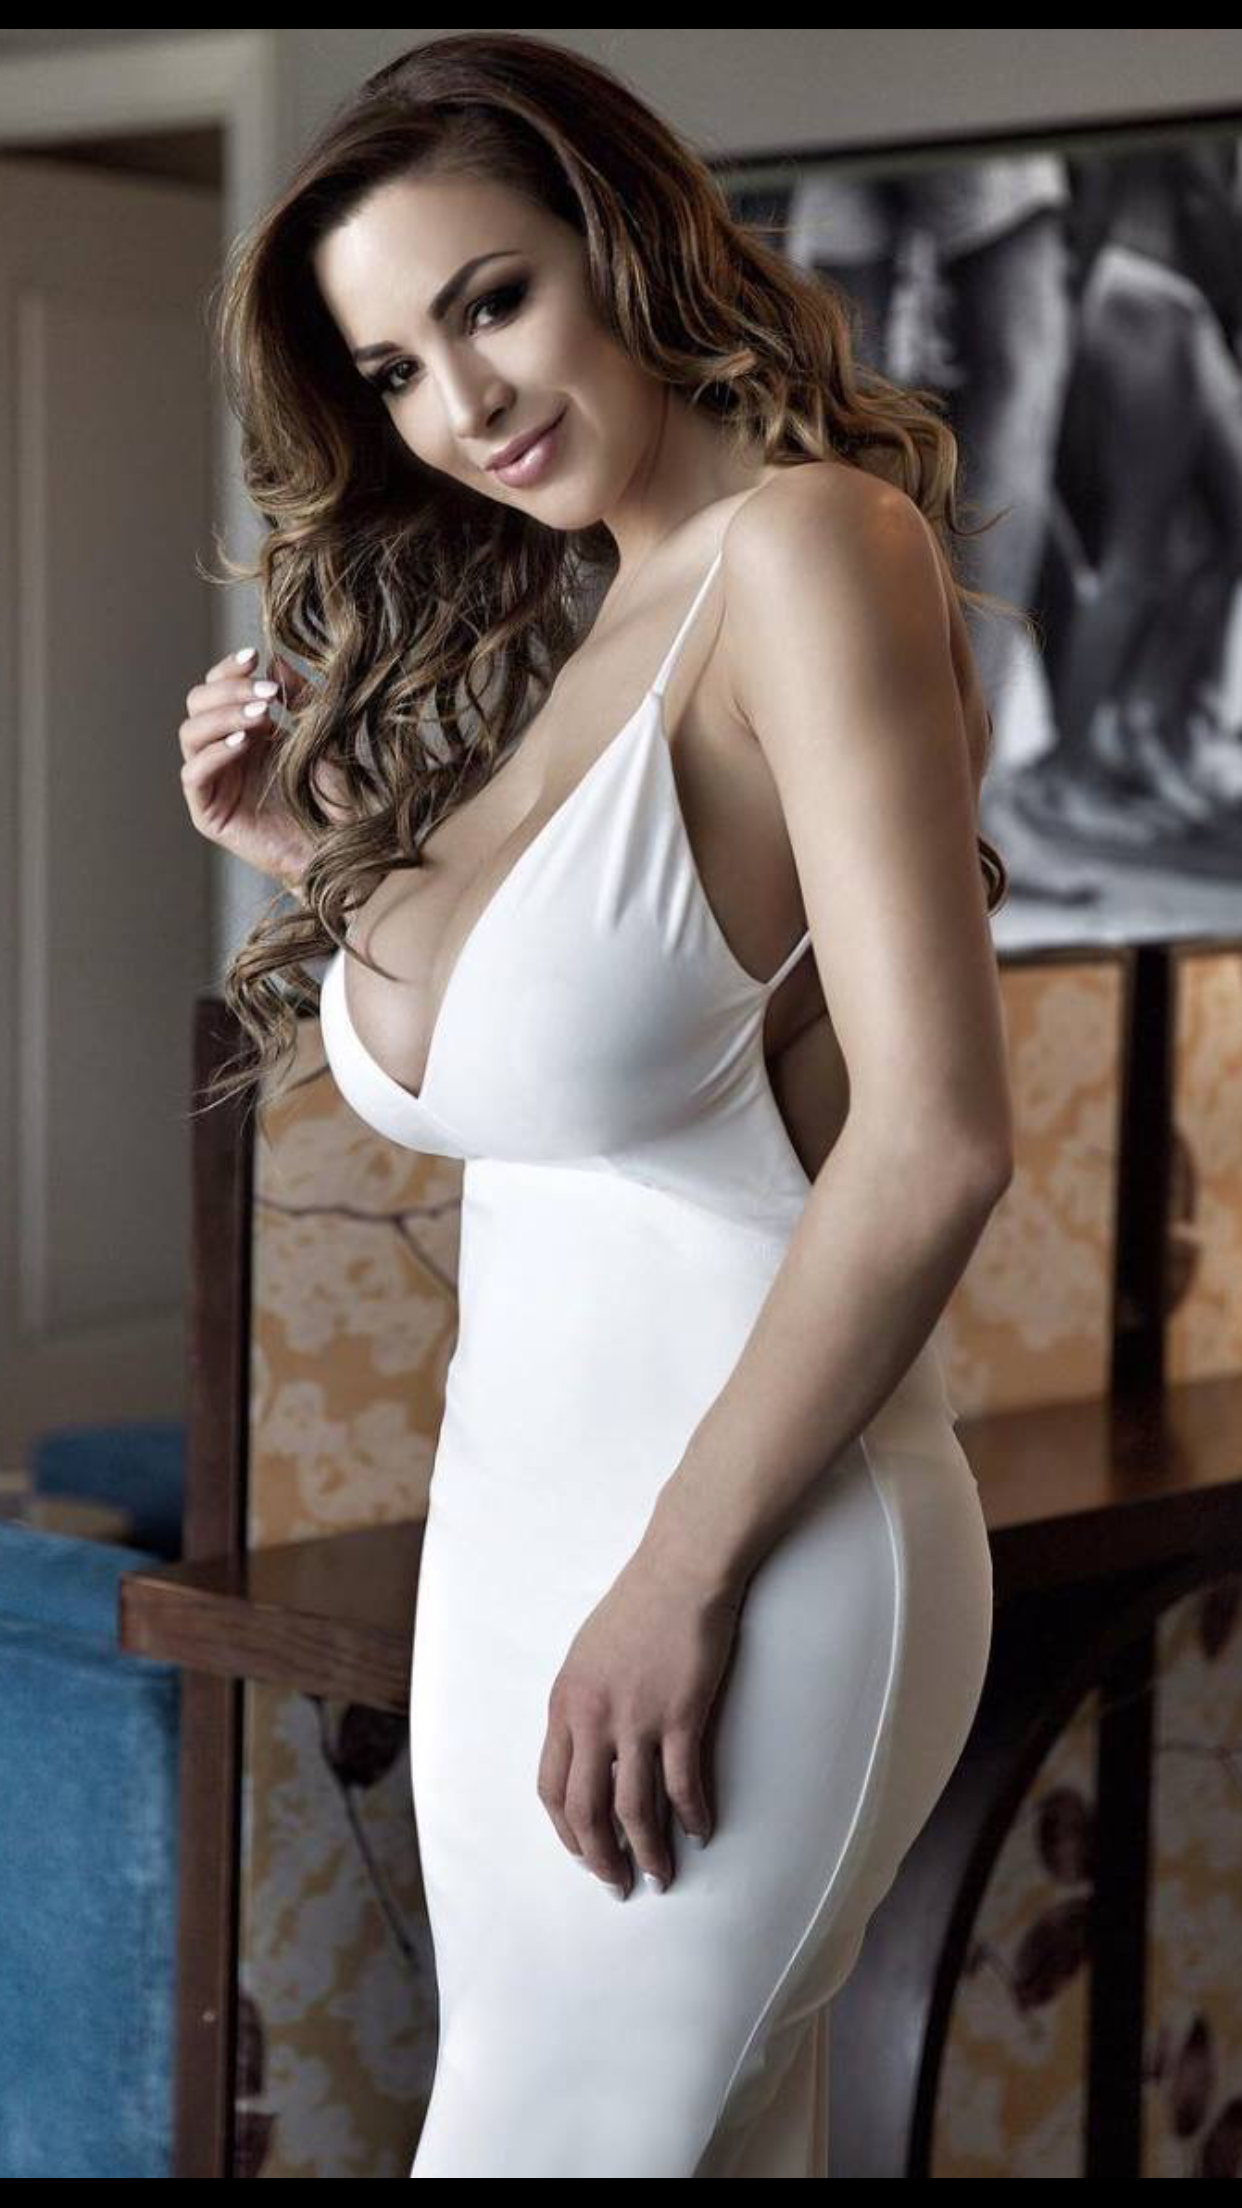 How to have a hot sexy curvy figure with bigger lifted up breasts along with a lean hot waist